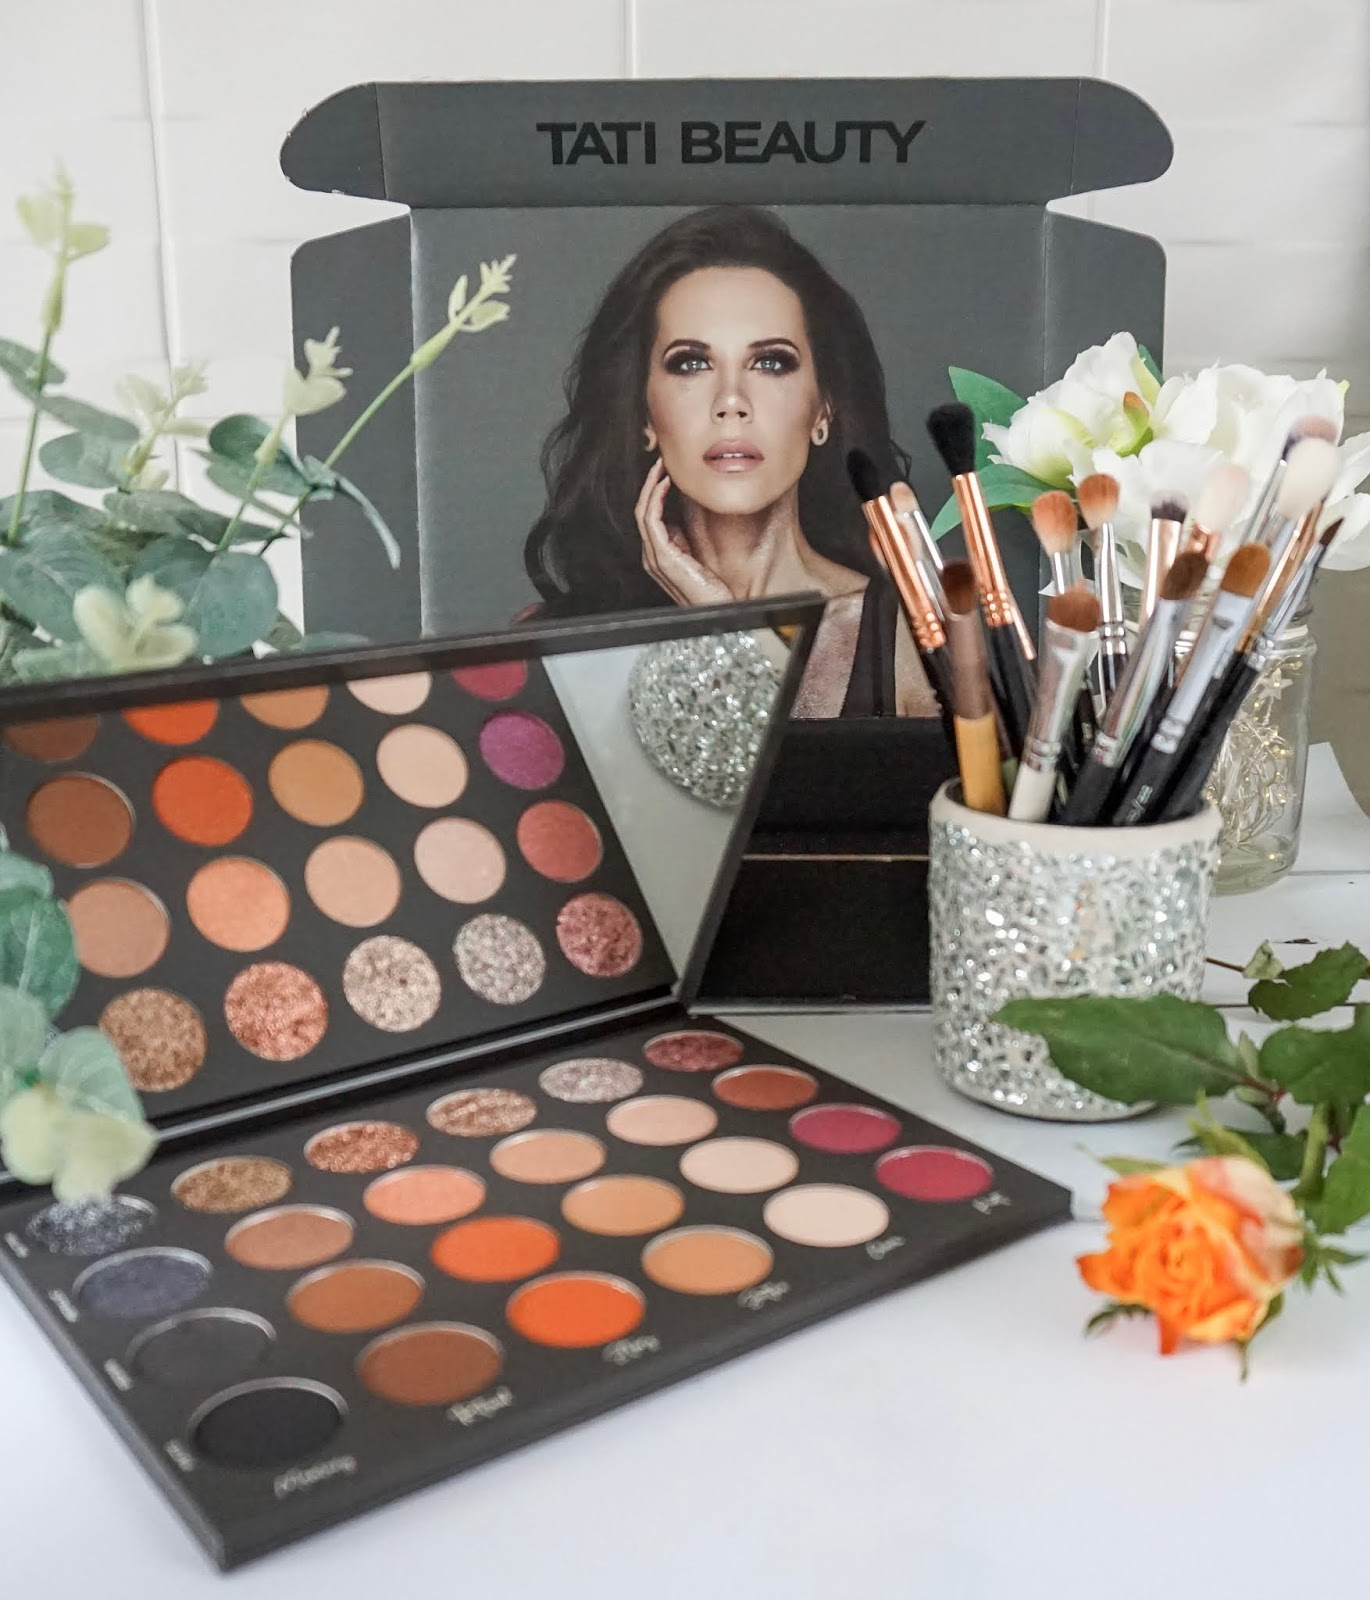 Tati-beauty-textured-neutrals-palette